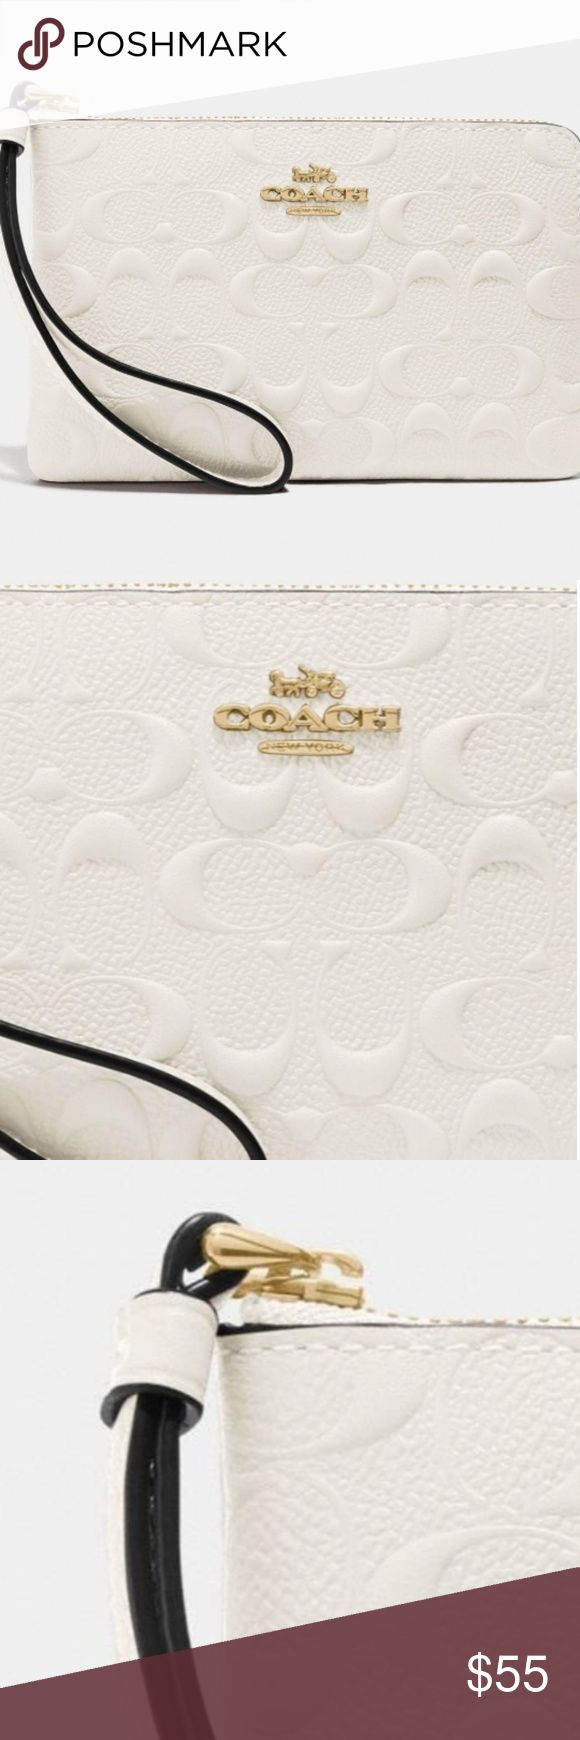 NWT COACH Signature Leather Corner Zip Wristlet ♡♡♡ NEW WITH TAGS ♡♡…